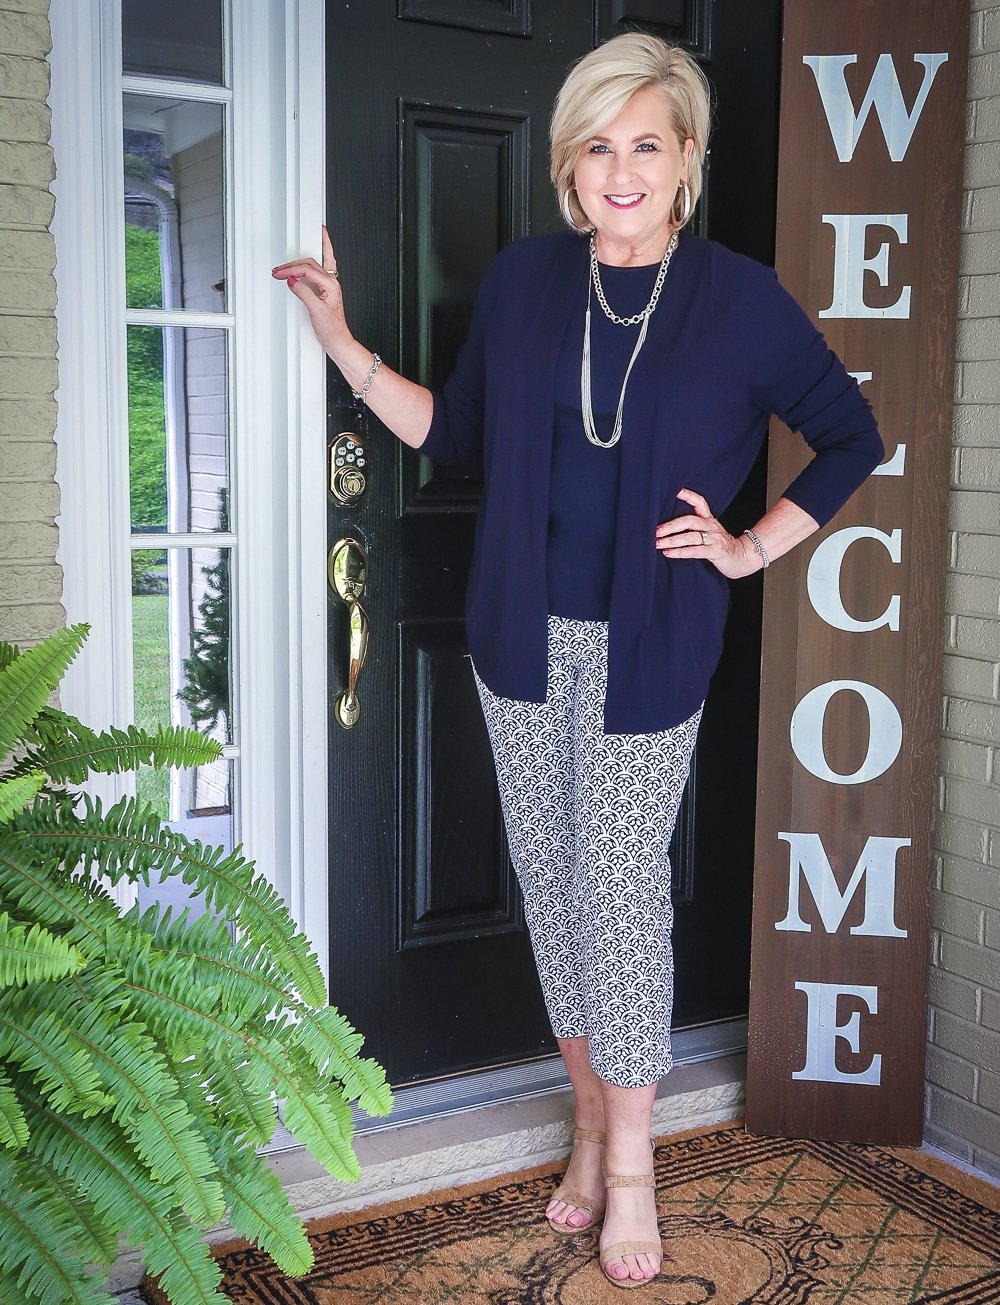 Fashion Blogger 50 Is Not Old is wearing a navy cardigan with a navy tank top and blue and white ankle pants